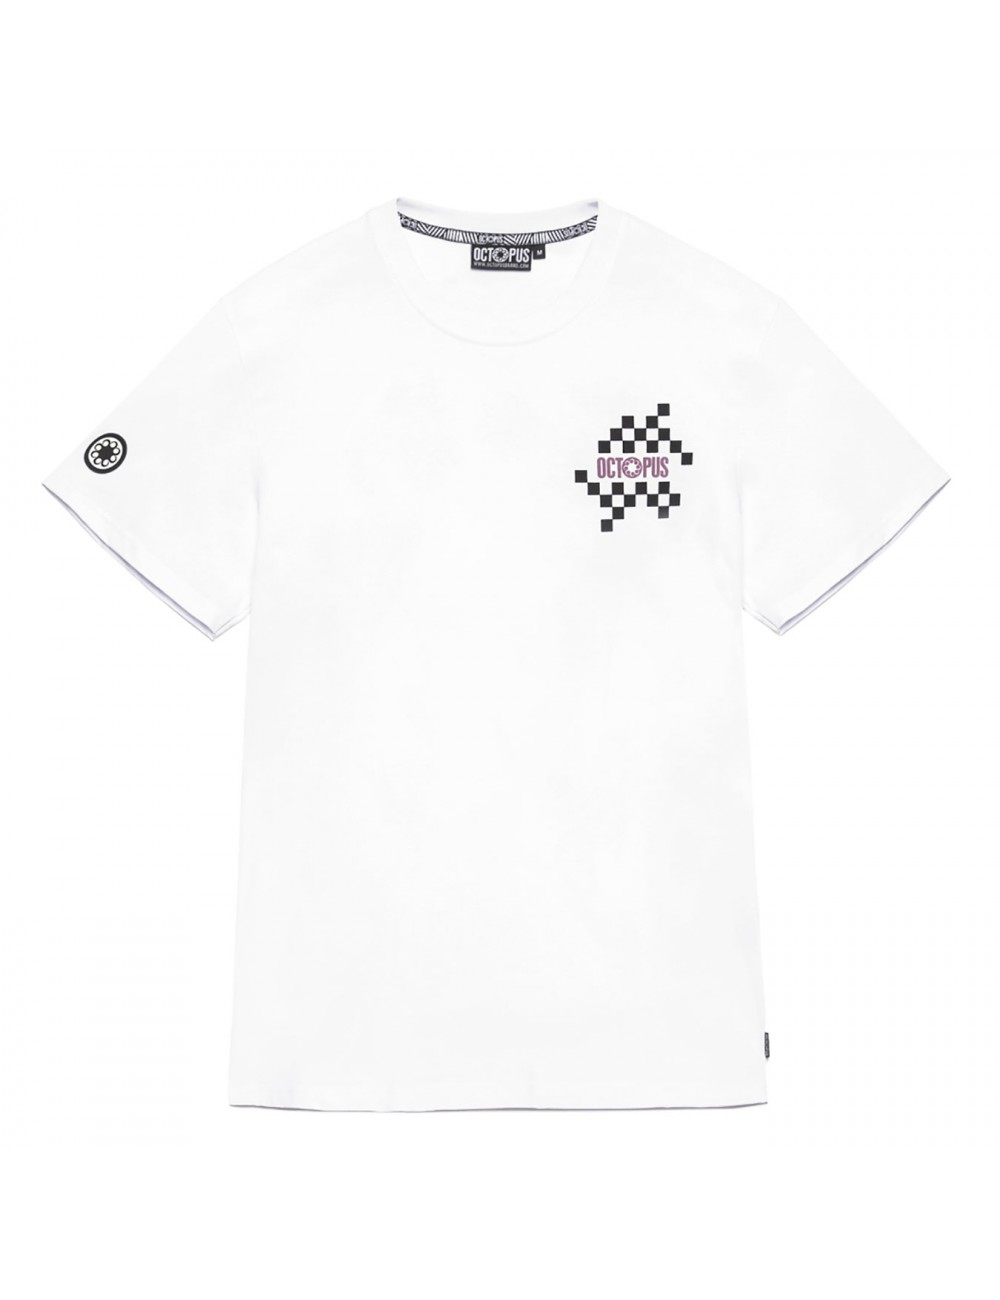 Octopus Checkered logo tee - 19WOTS14 | Shapestore.it